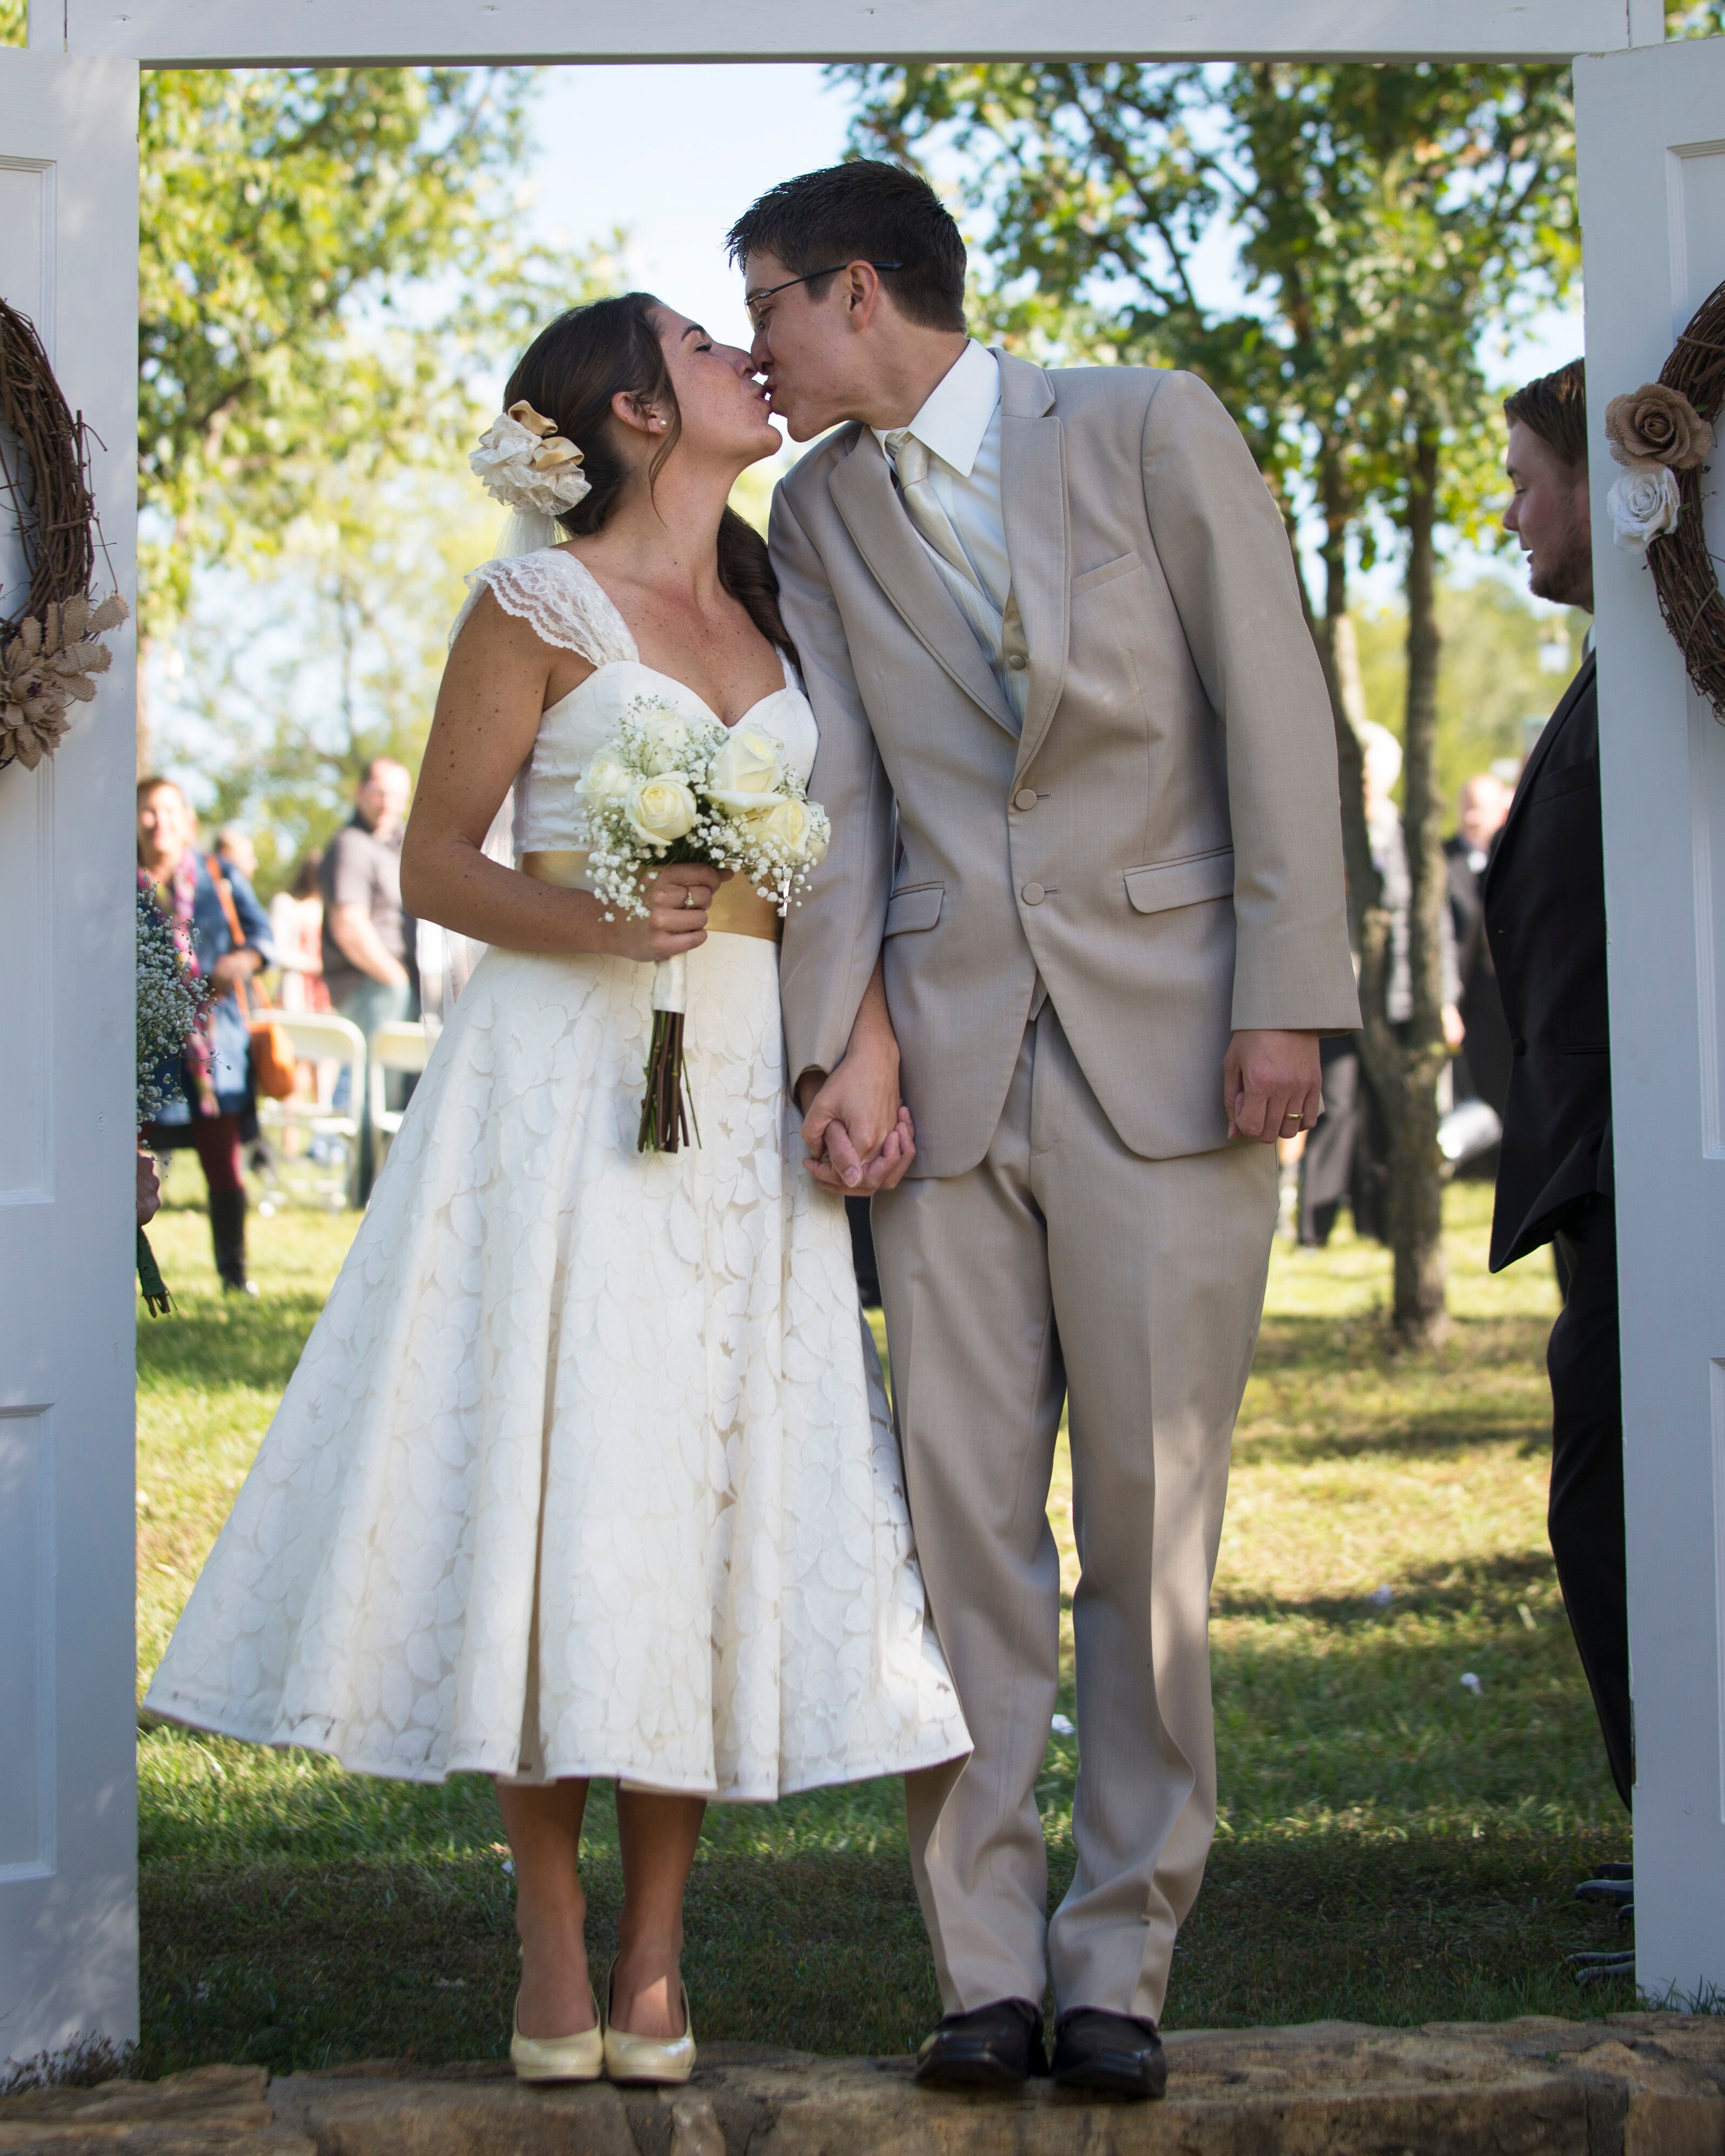 Simple Casual Wedding Ideas: A Simple, Casual Wedding At Pomona State Park In Vassar